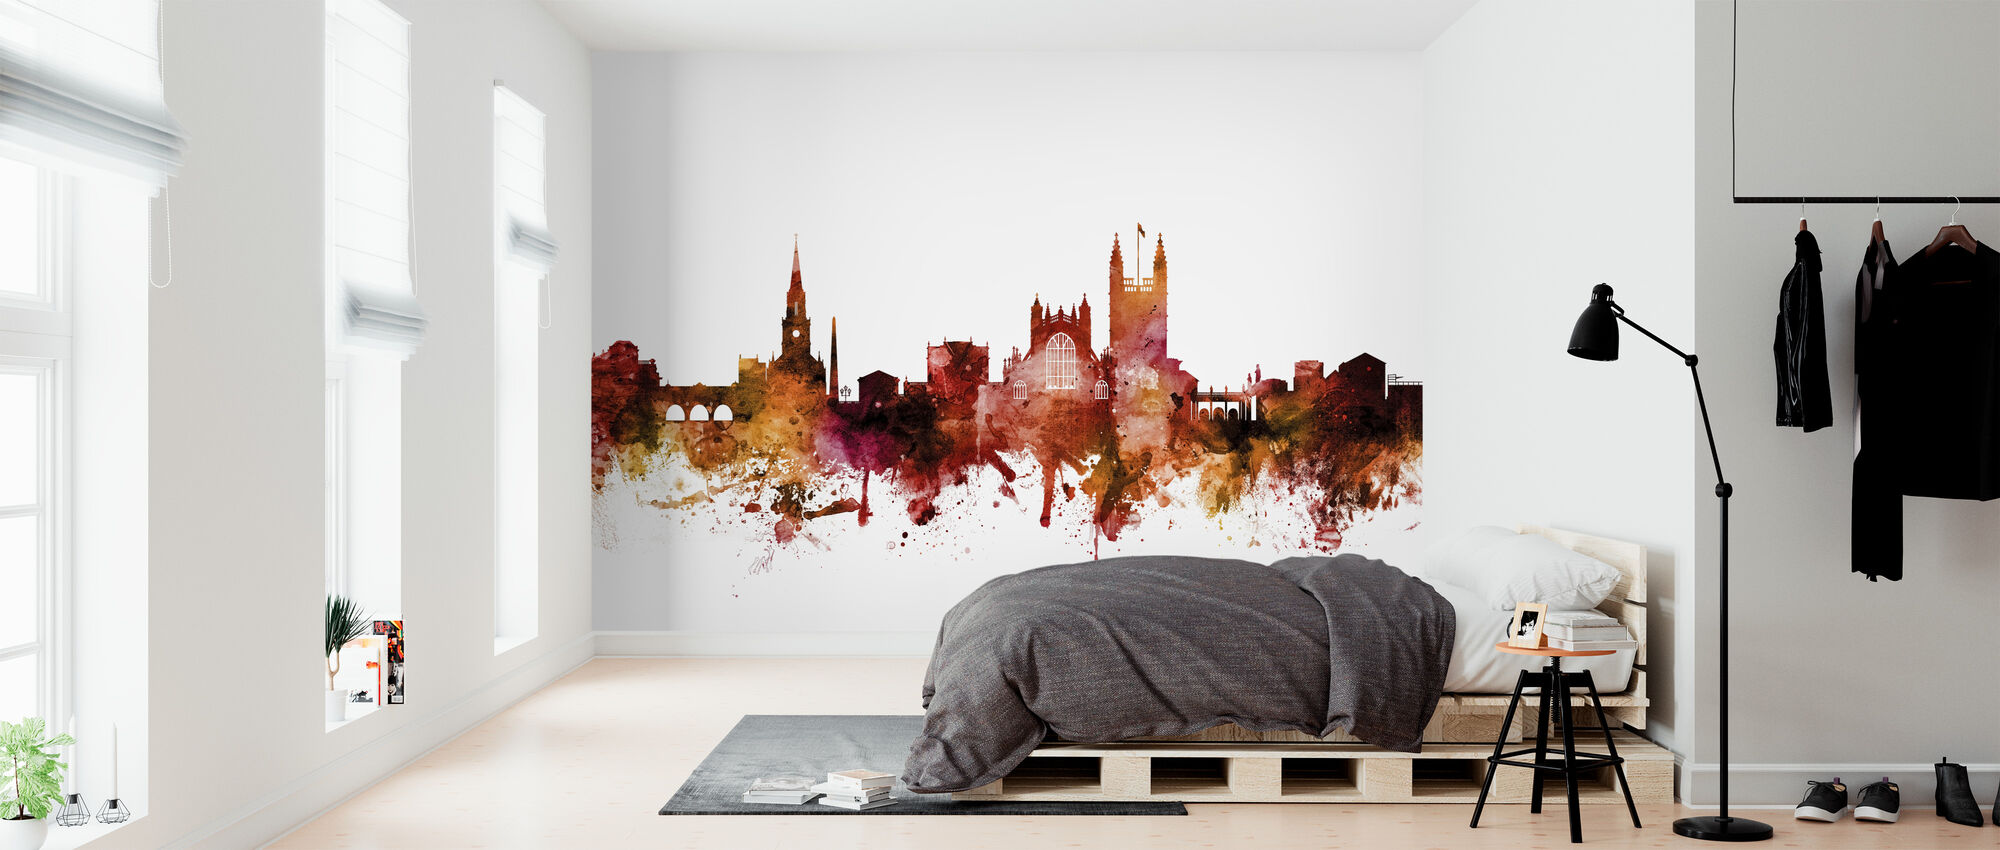 Bath England Skyline Cityscape - Wallpaper - Bedroom